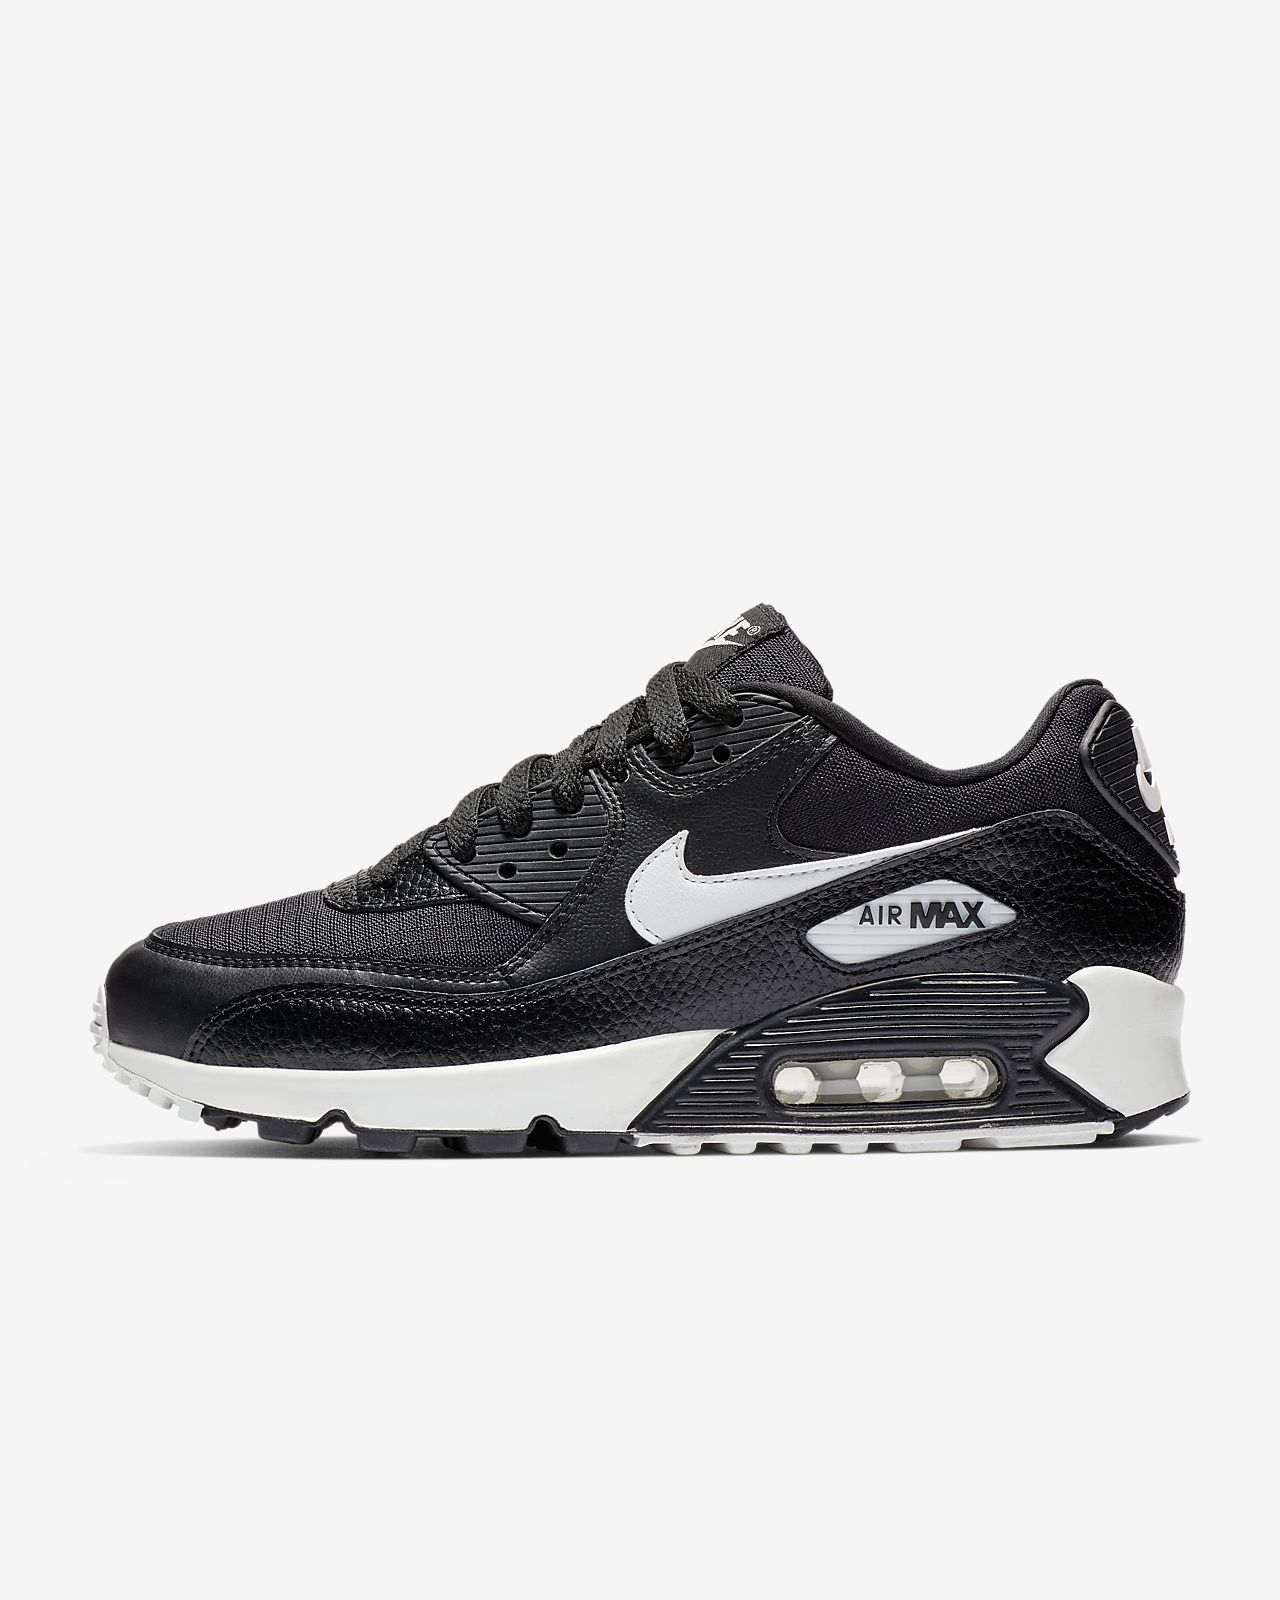 huge discount 3961e 790d5 Nike Air Max 90 Women s Shoe. Nike.com GB